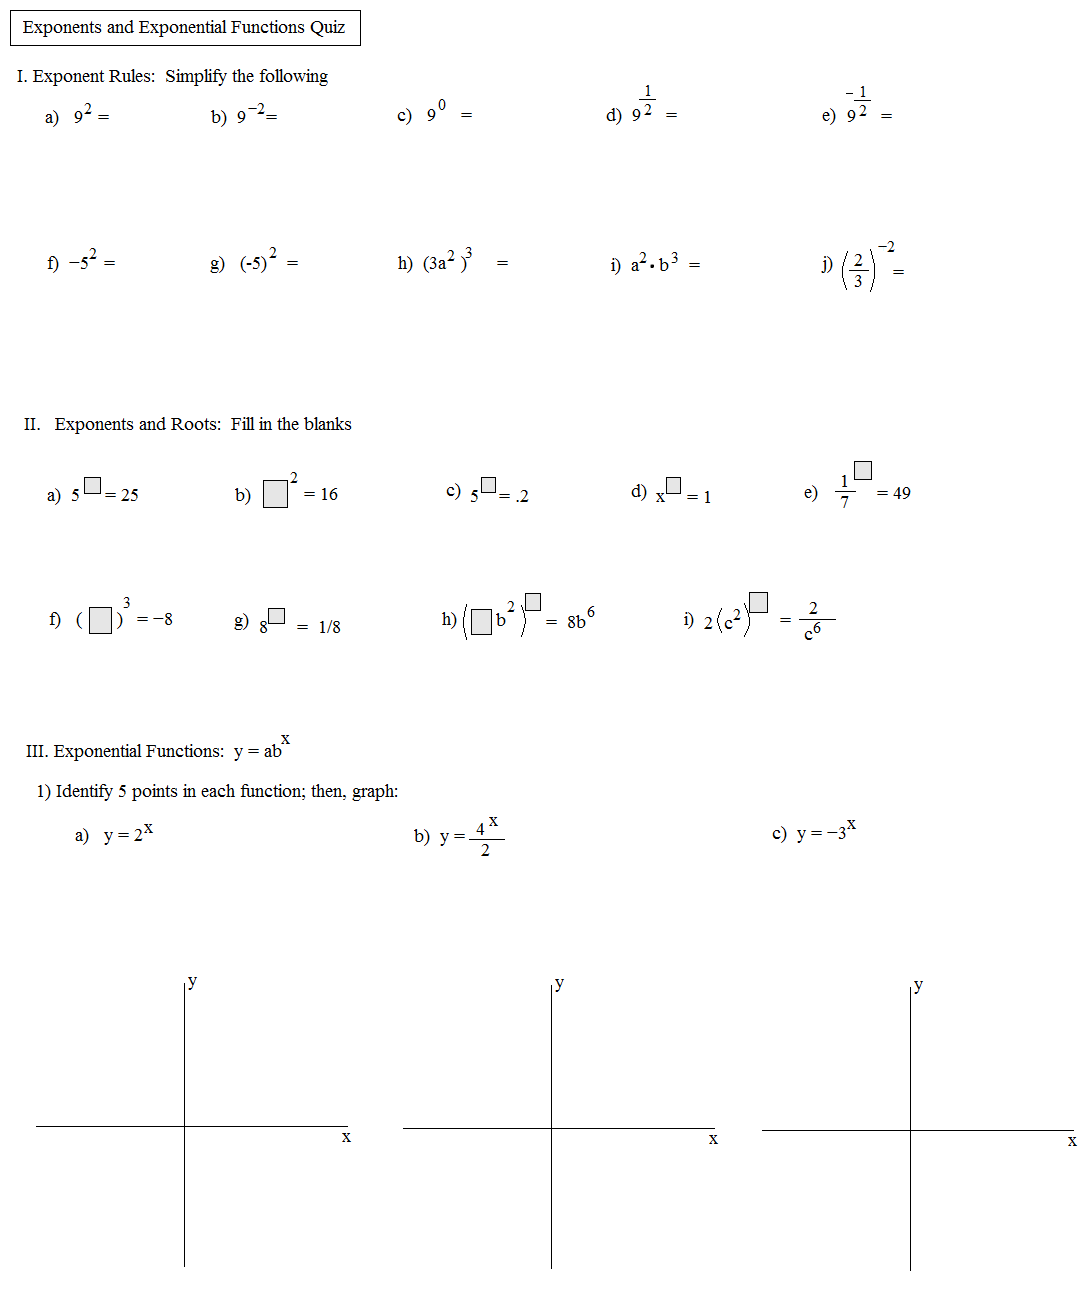 worksheet Exponential Functions Worksheet Algebra 1 exponential equations worksheet abitlikethis worksheets and logarithmic functions exponents quiz for matt a 69125213 large